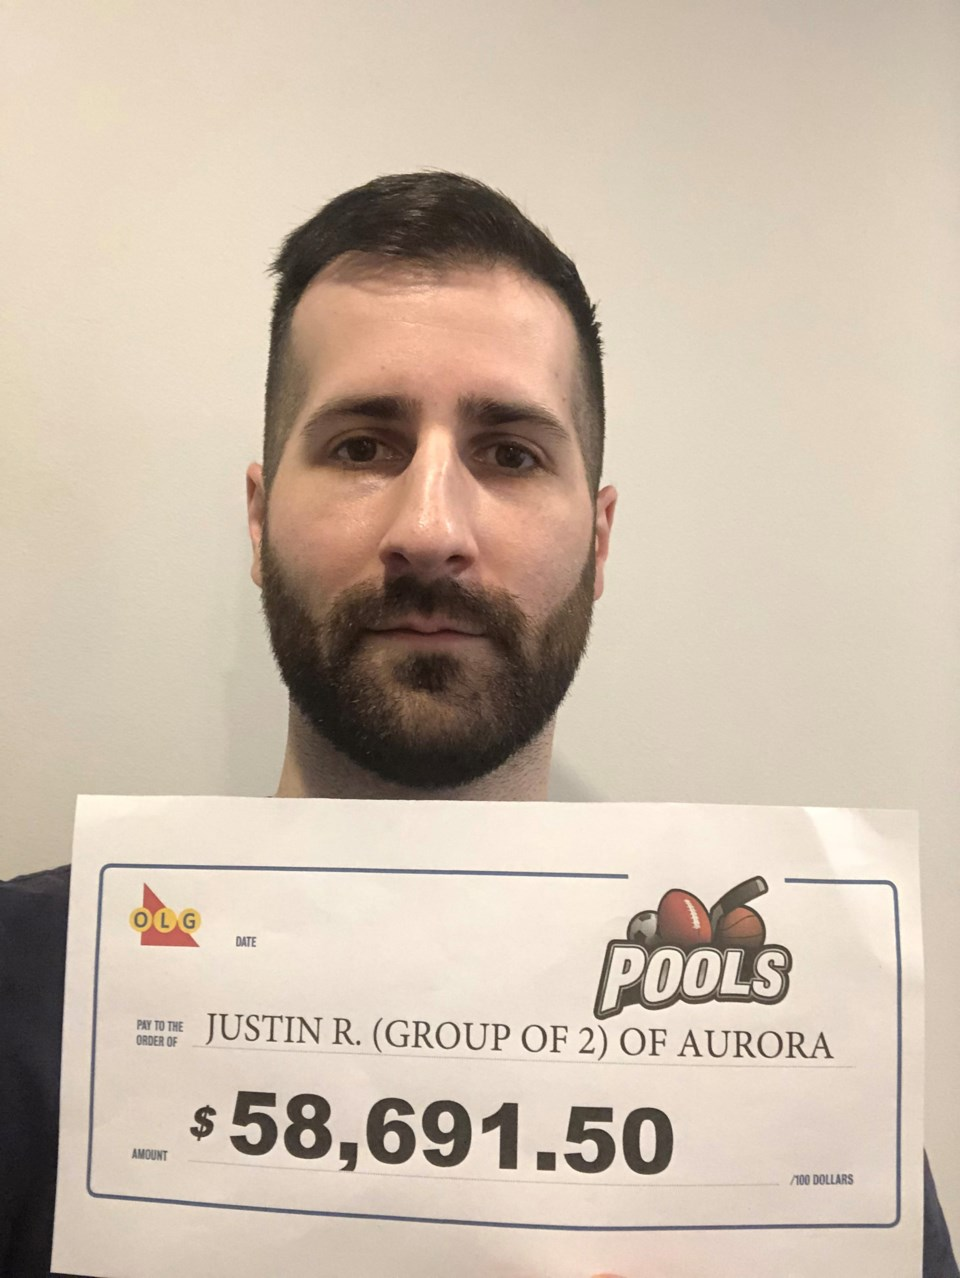 Pools_List 1349 Card 30_$58,691.50_Justin Rosa (Group of 2) of Aurora